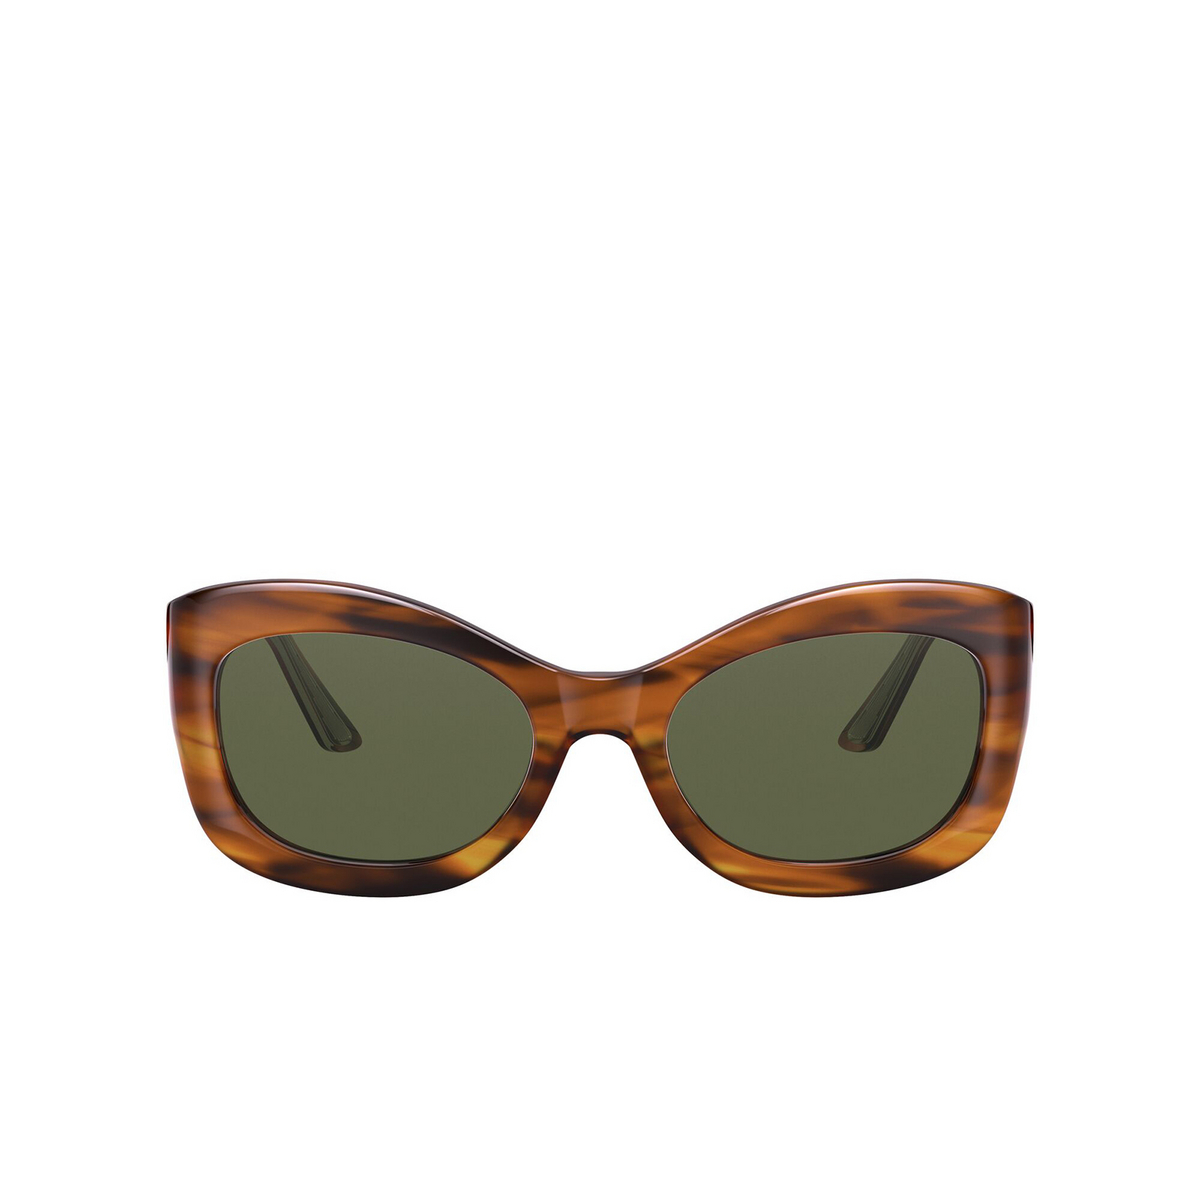 Oliver Peoples® Butterfly Sunglasses: Edina OV5441SU color Raintree 101171 - front view.